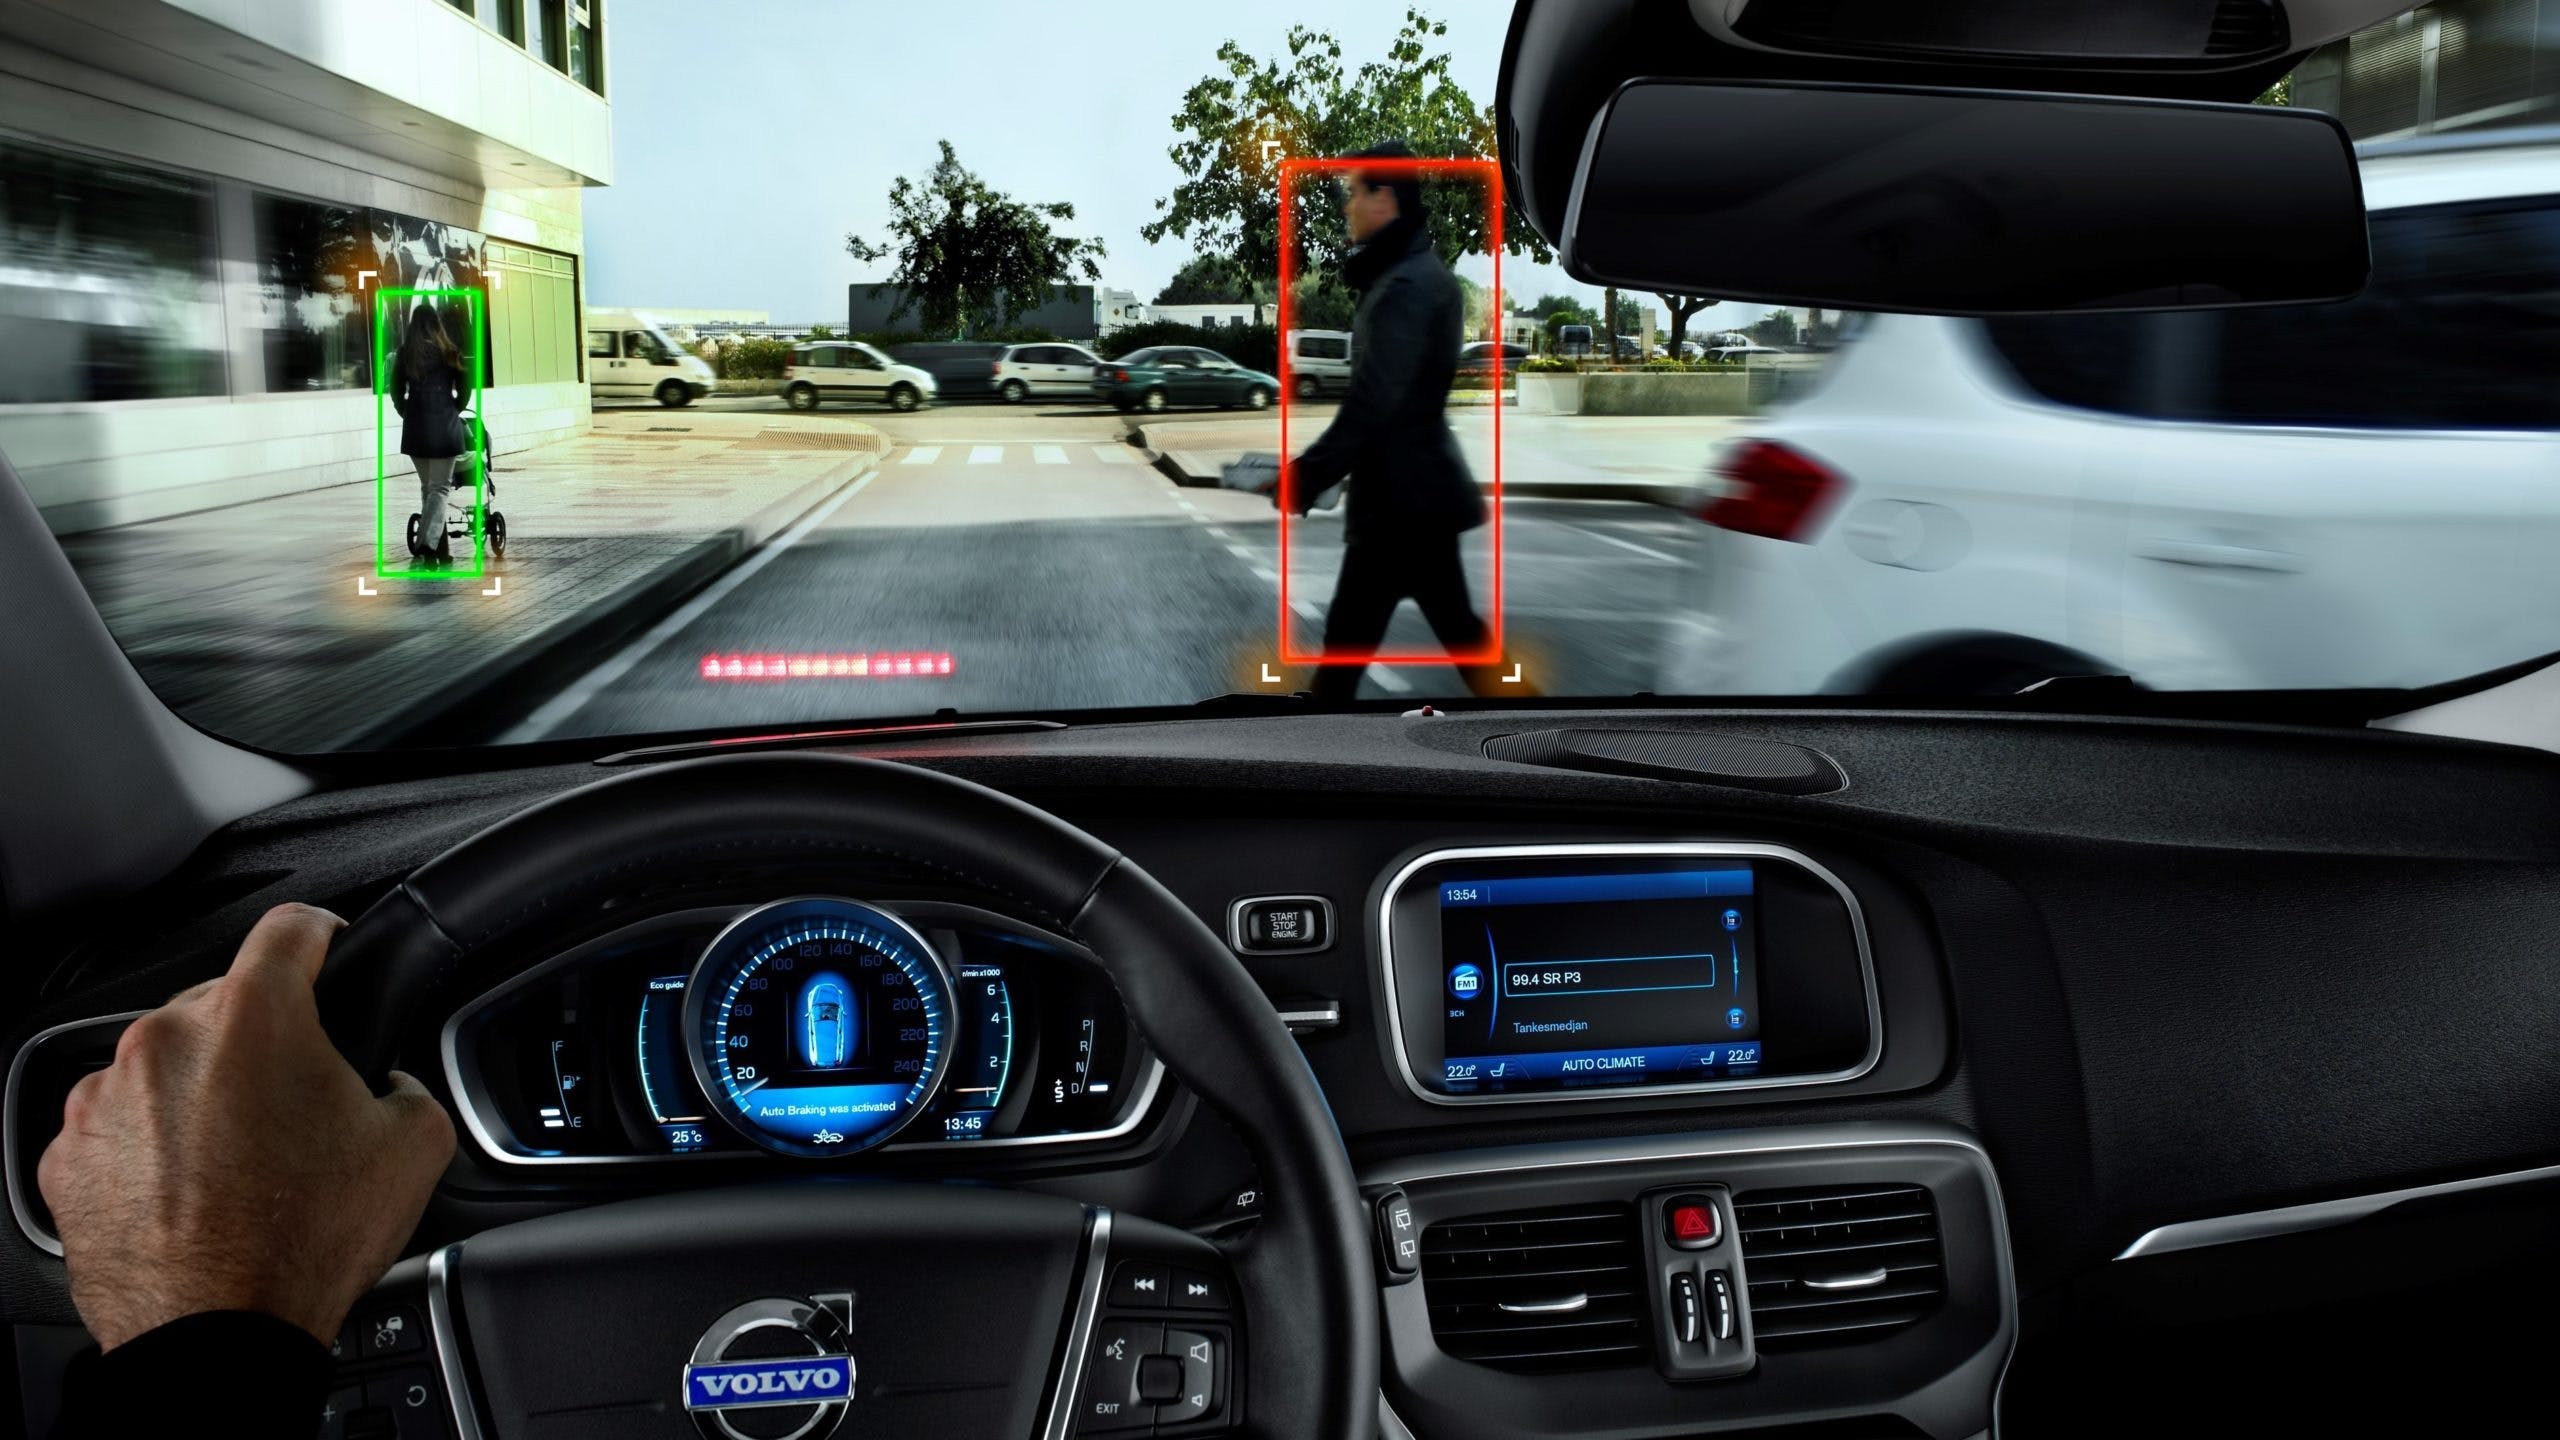 How Does Pedestrian Detection Work?